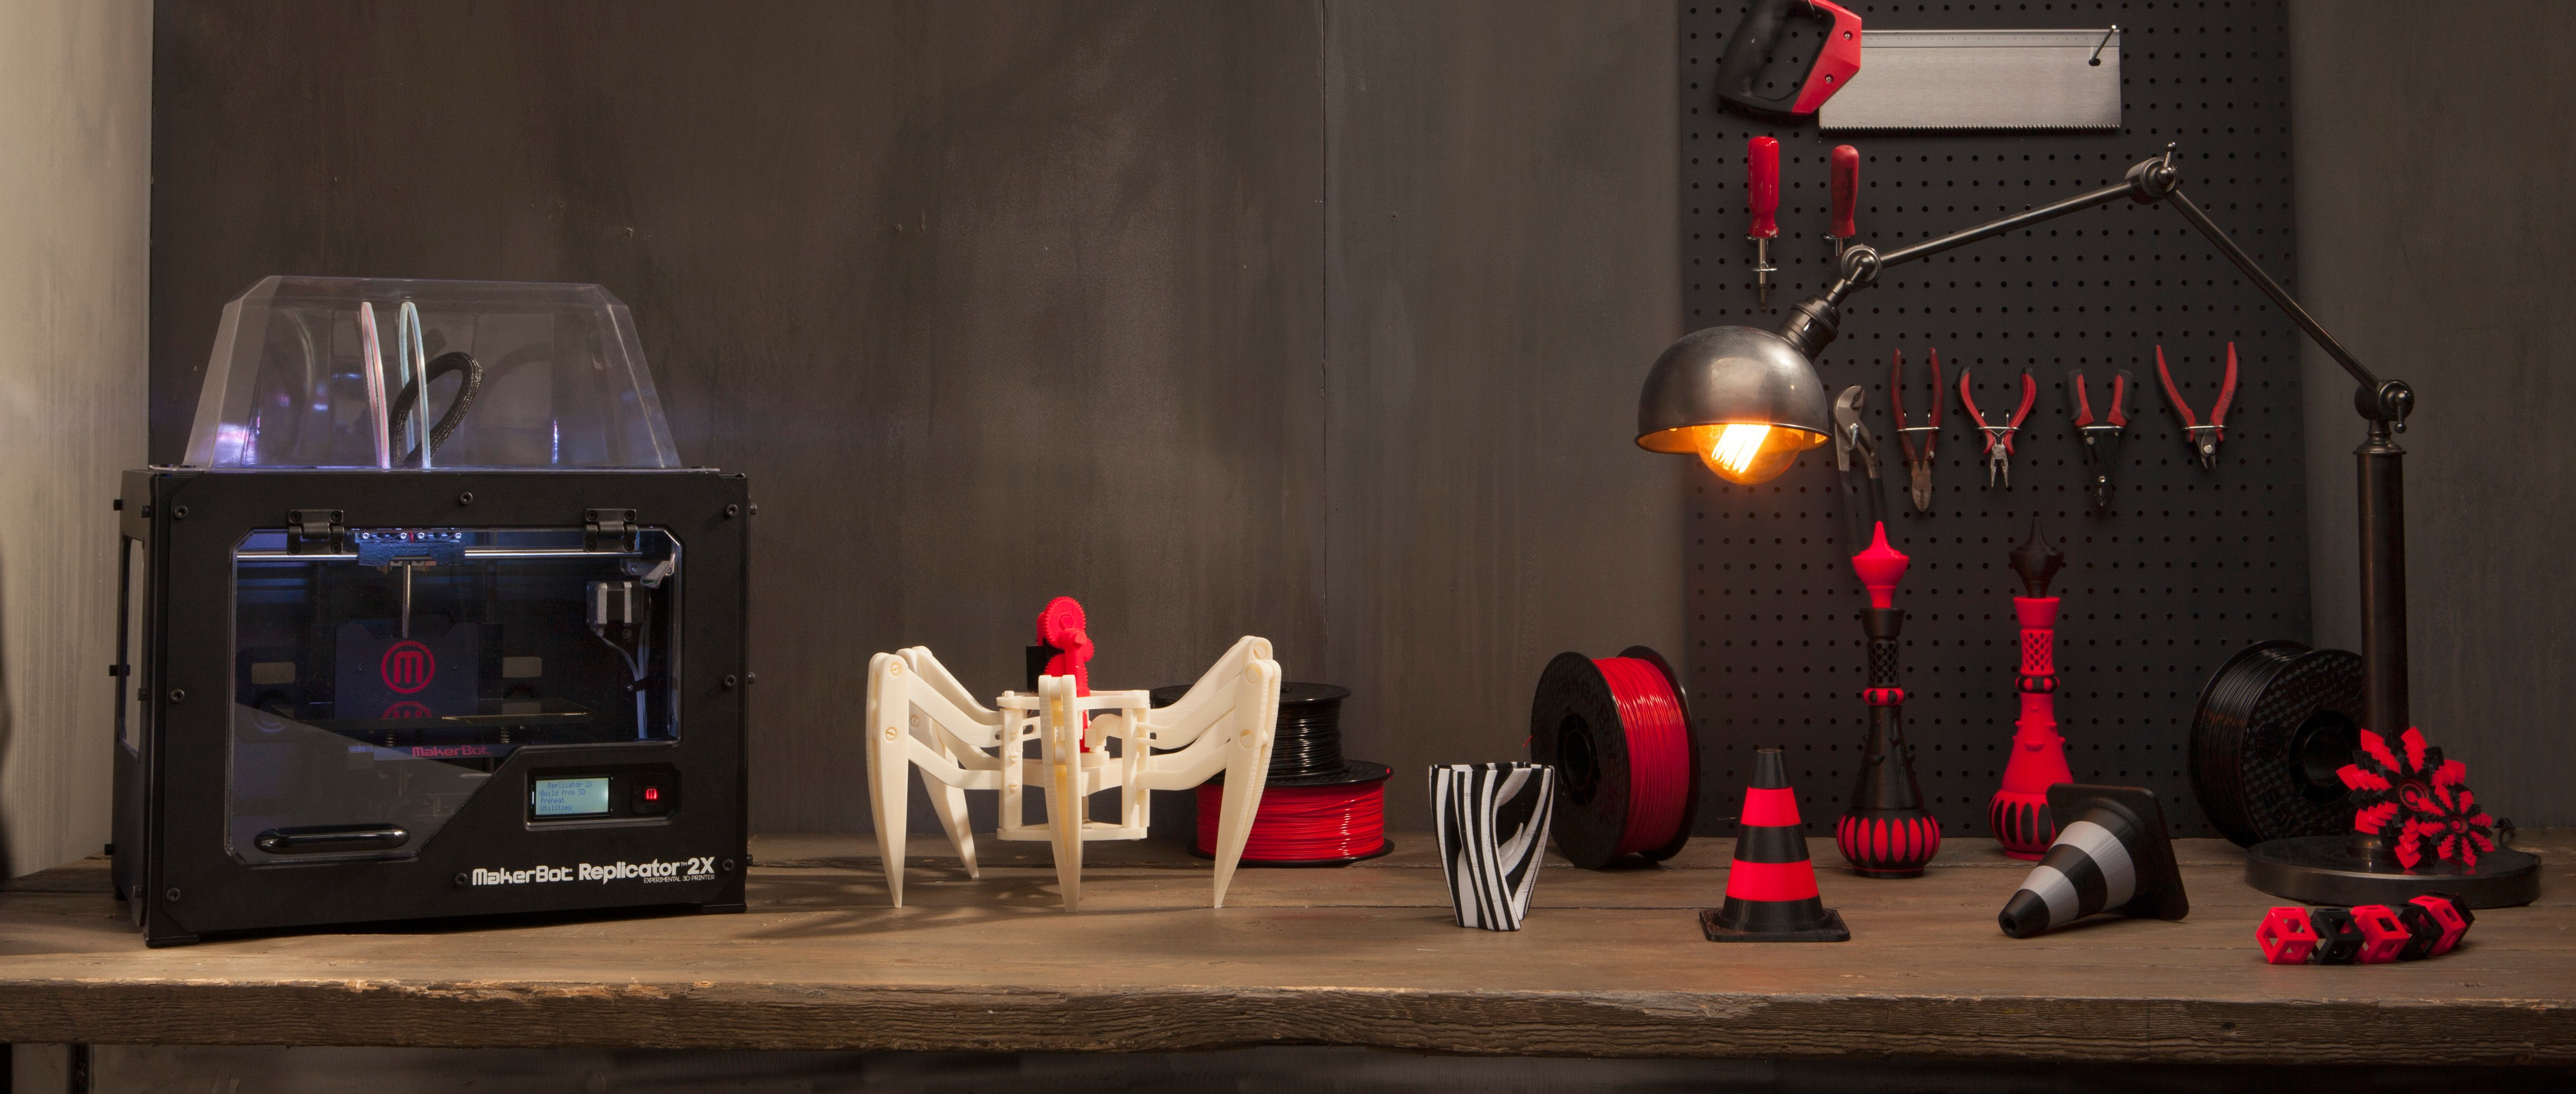 Learn More About Makerbot